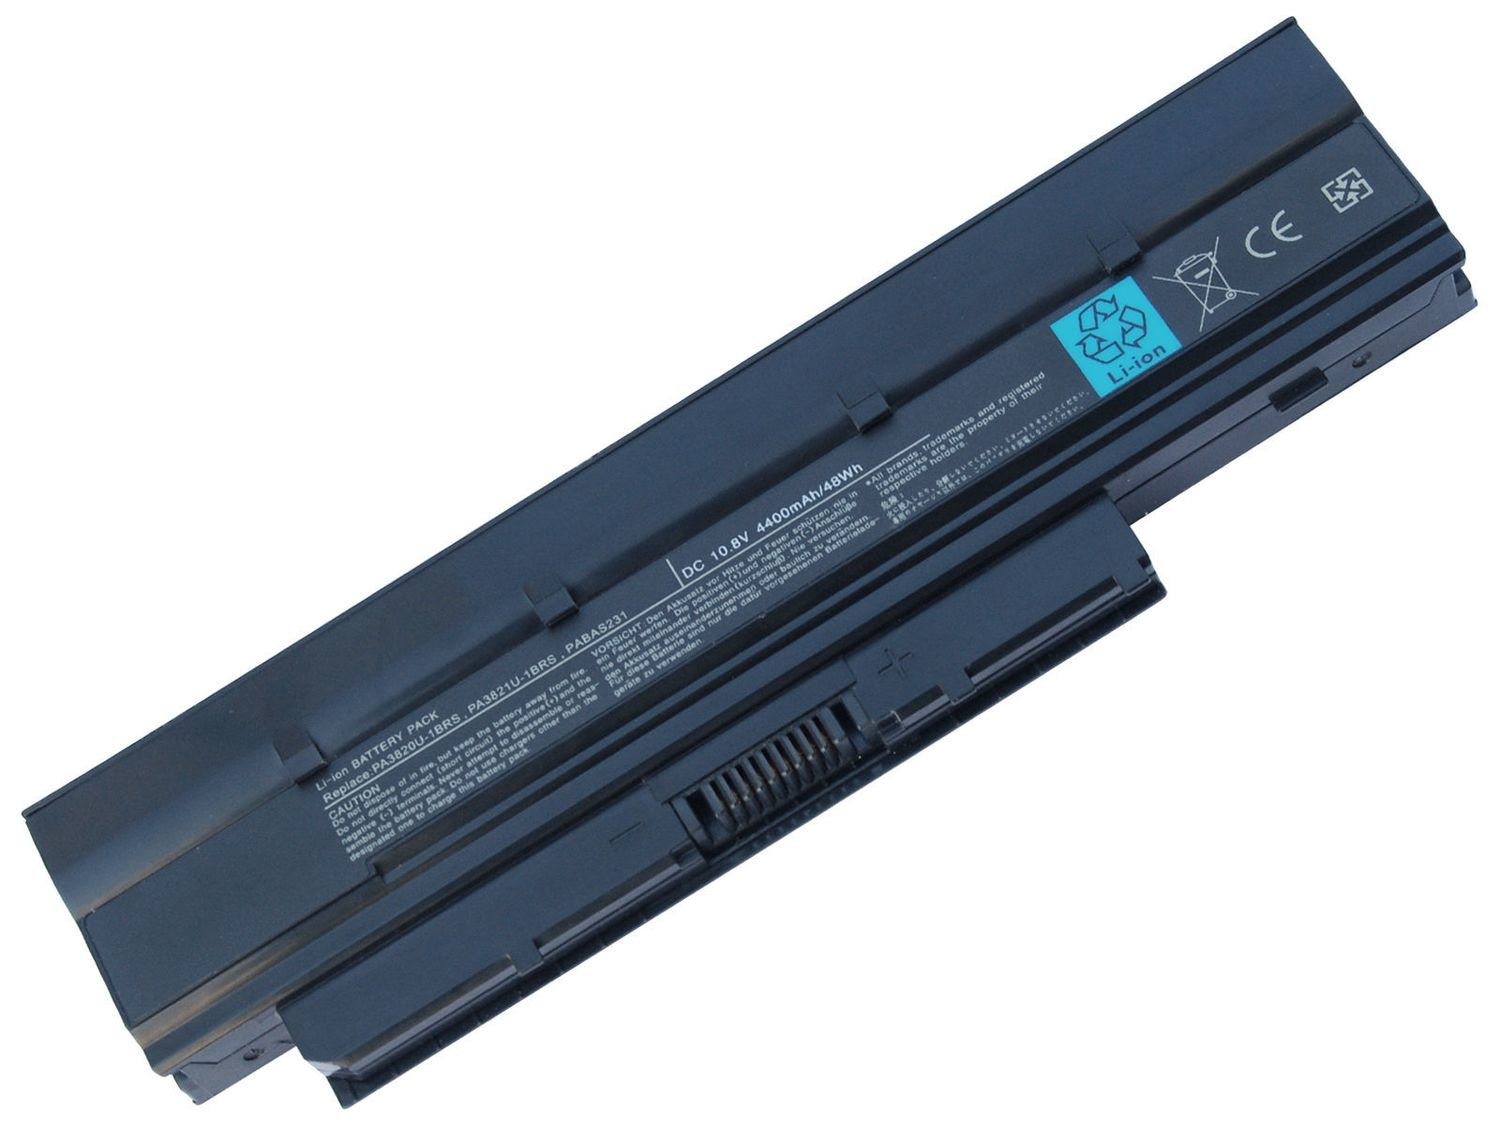 Toshiba satellite T210 T215 T230 T235 series Compatible laptop battery